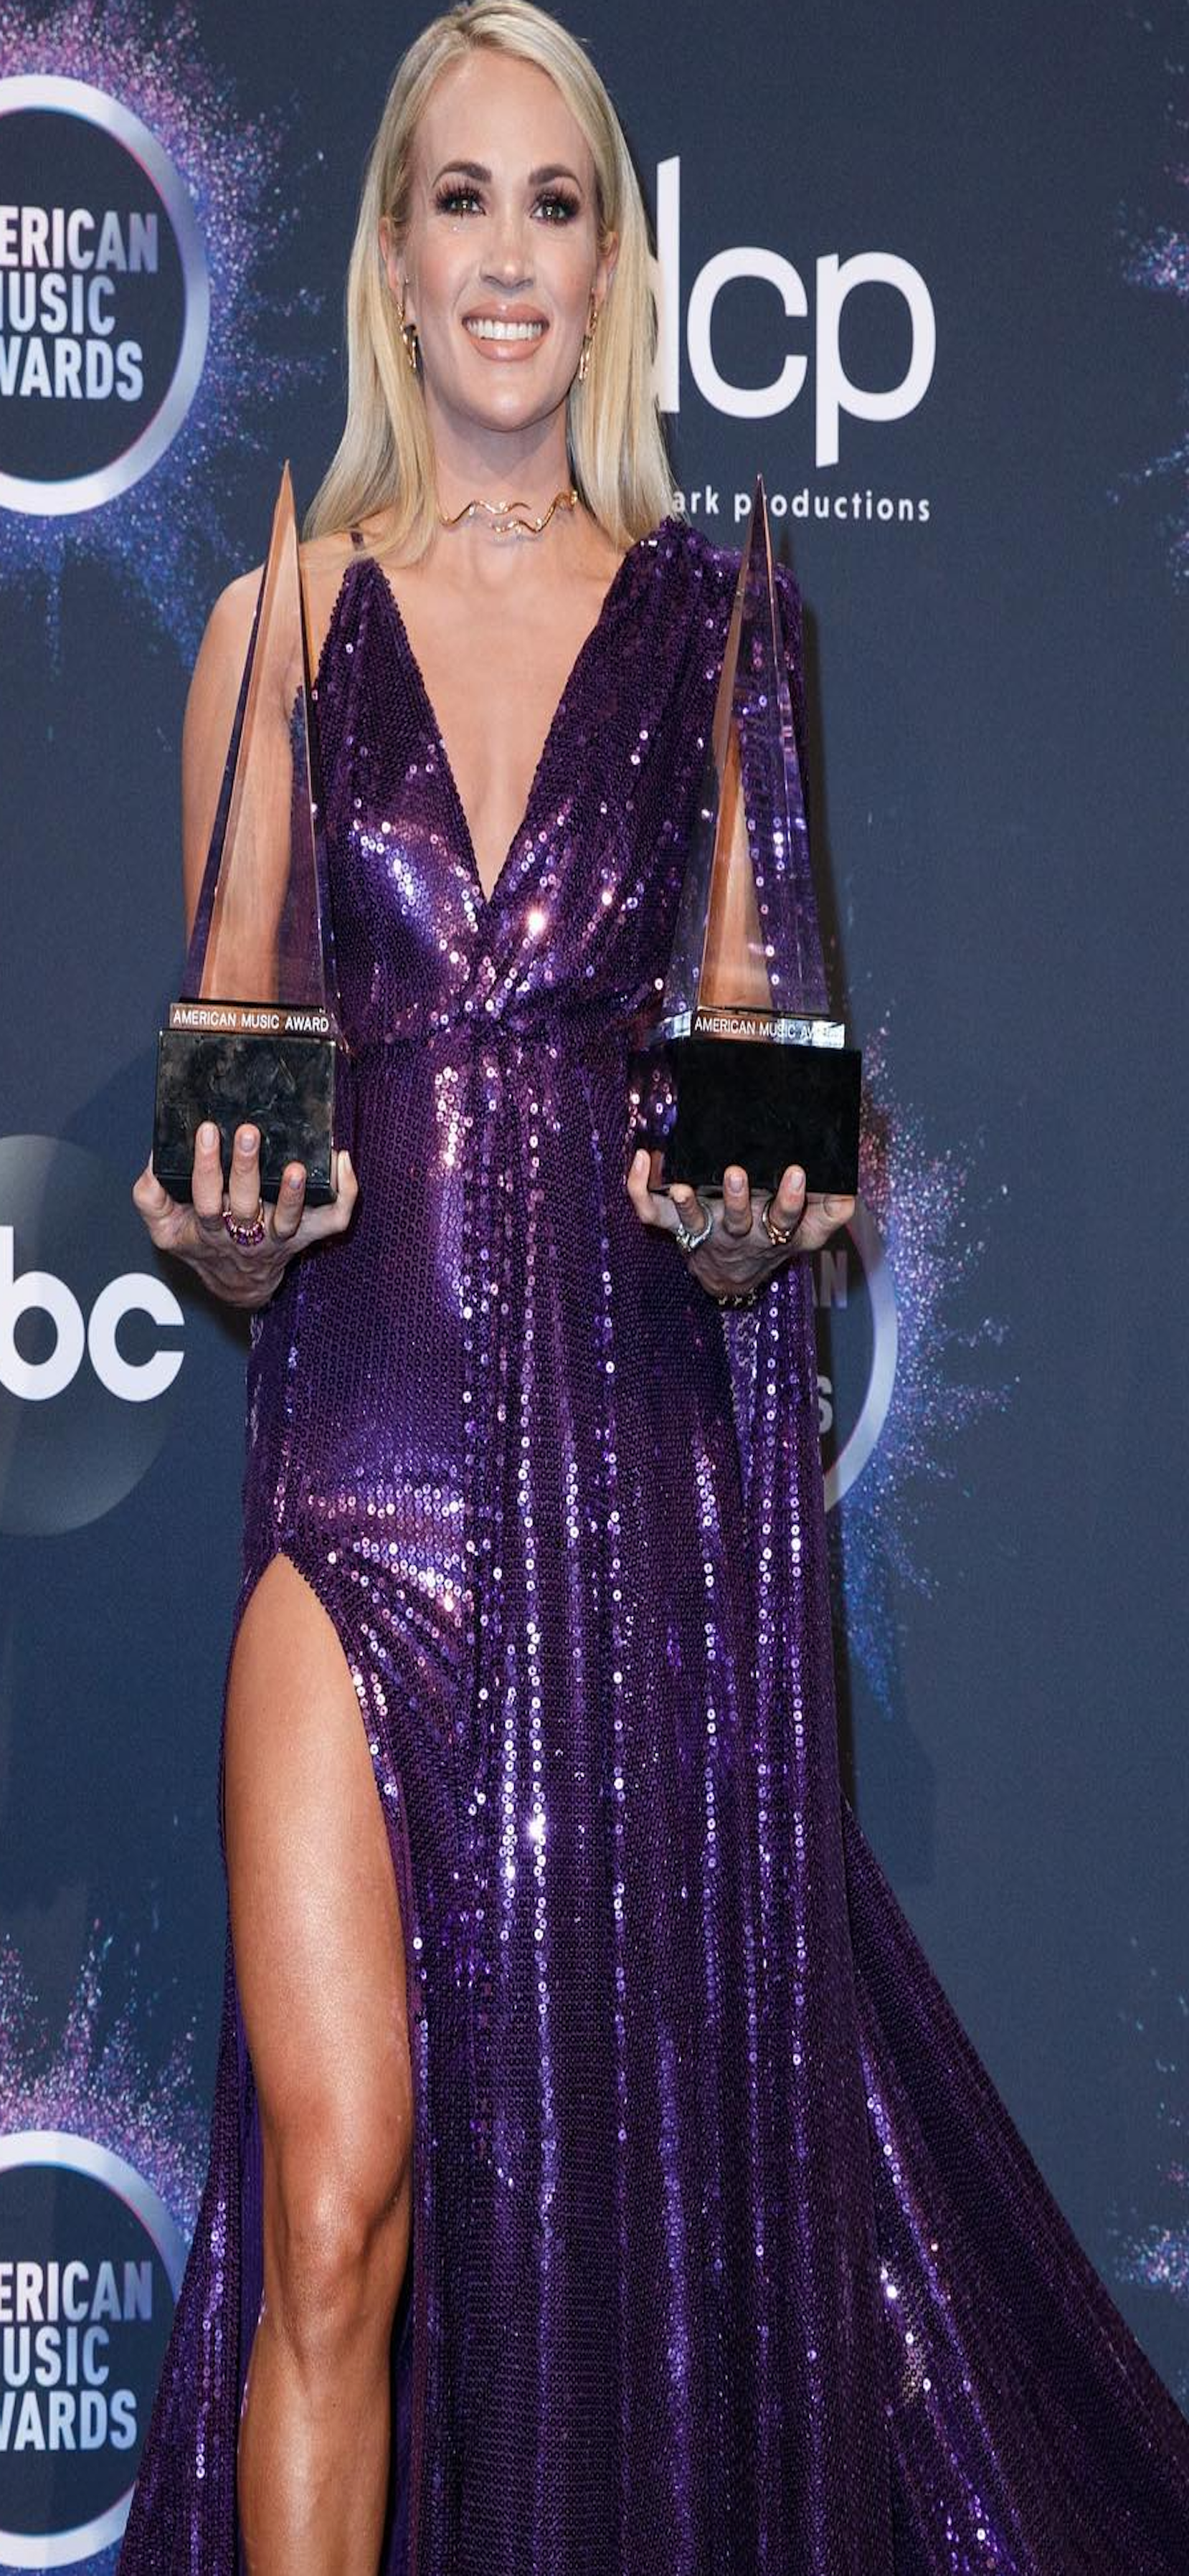 CARRIE WINS 14th AND 15th AMERICAN MUSIC AWARDS